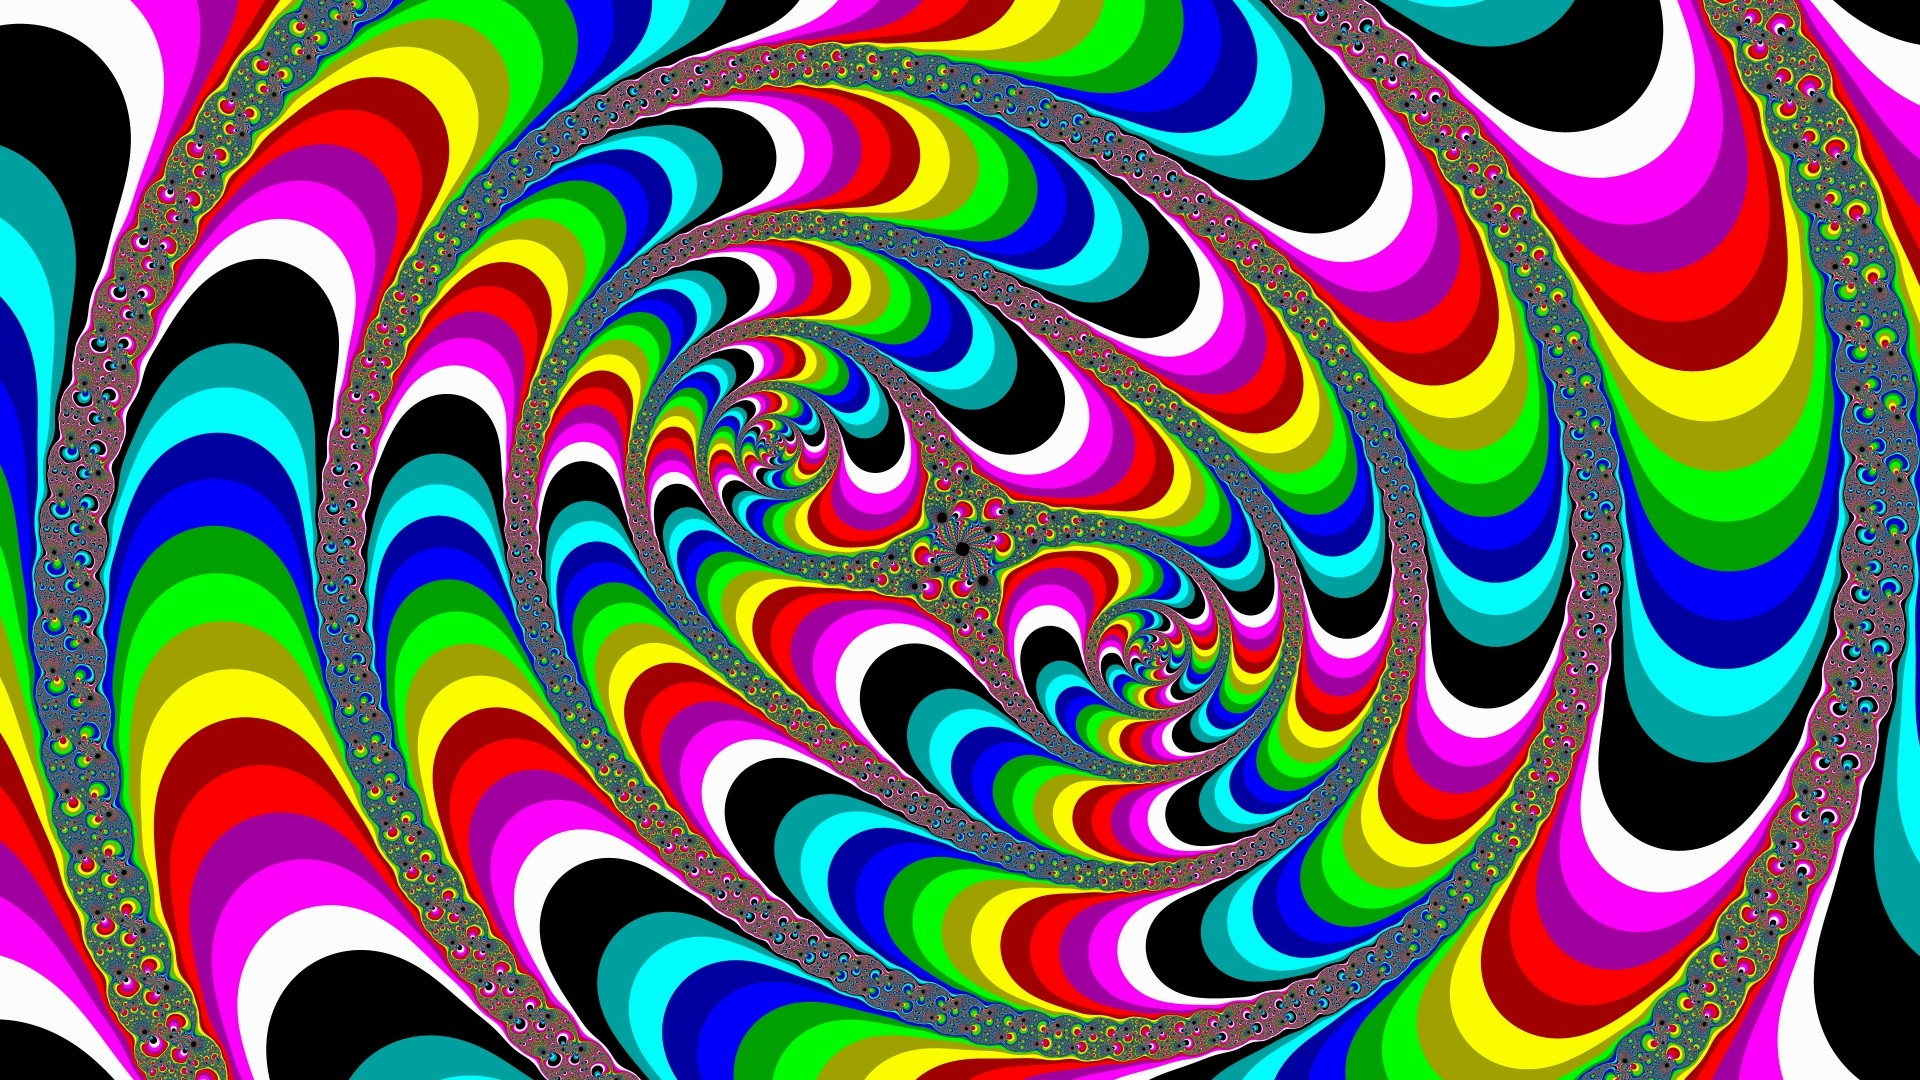 1920x1080 psychedelic backgrounds hd wallpapers desktop wallpapers high definition  monitor download free amazing background photos artwork 1920×1080 Wallpaper  HD